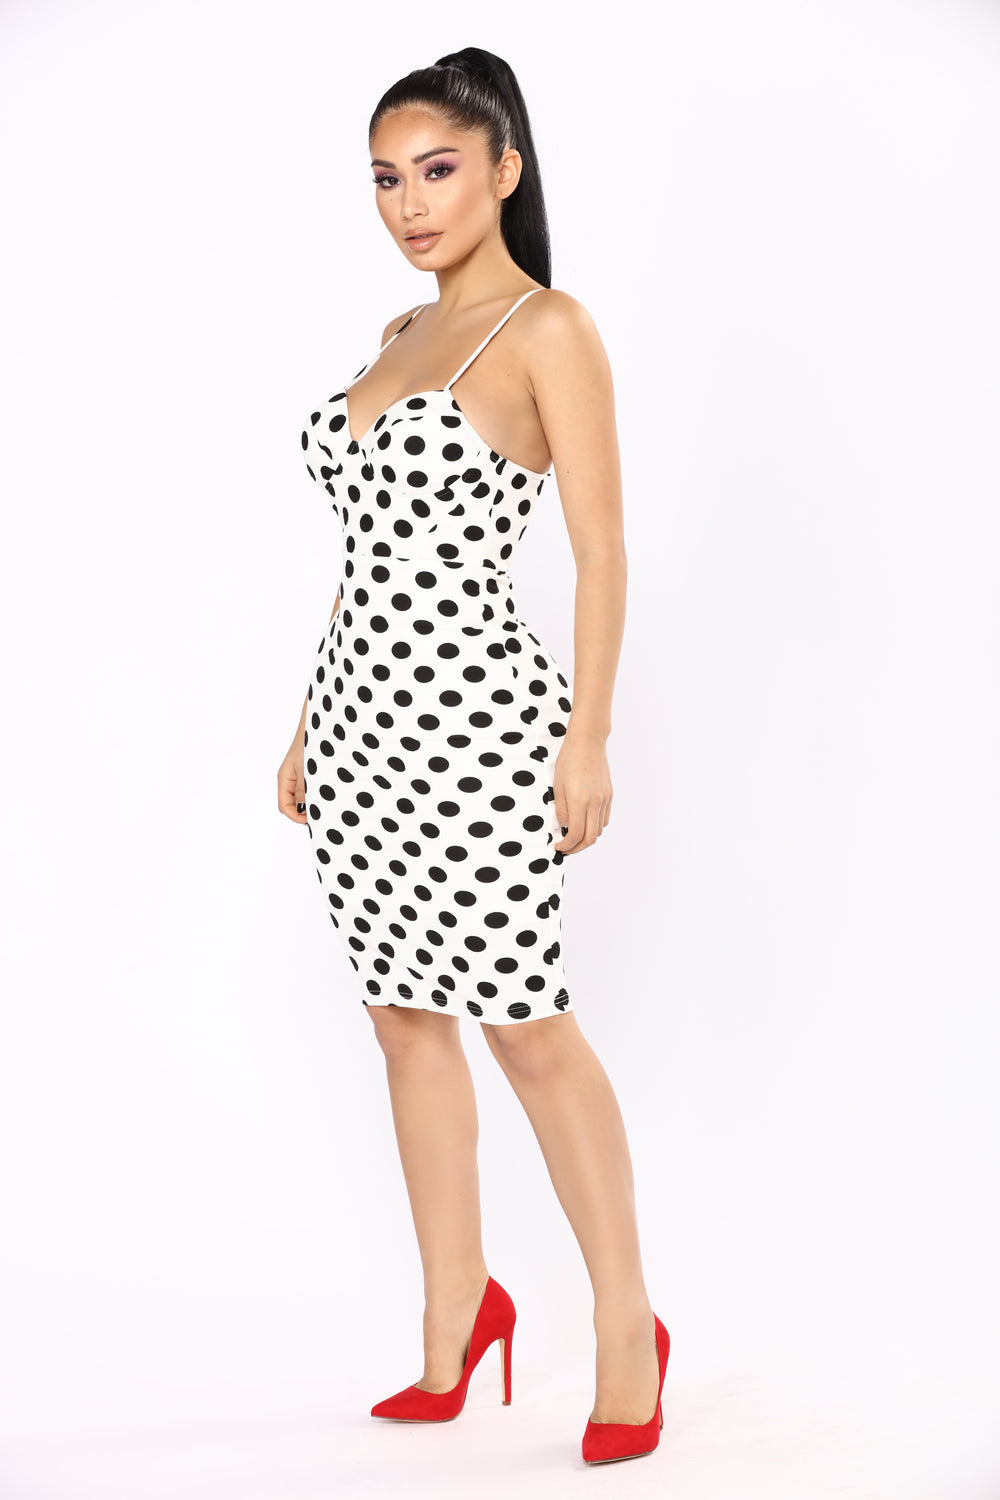 Polka Dot Frenzy Dress - White/Black